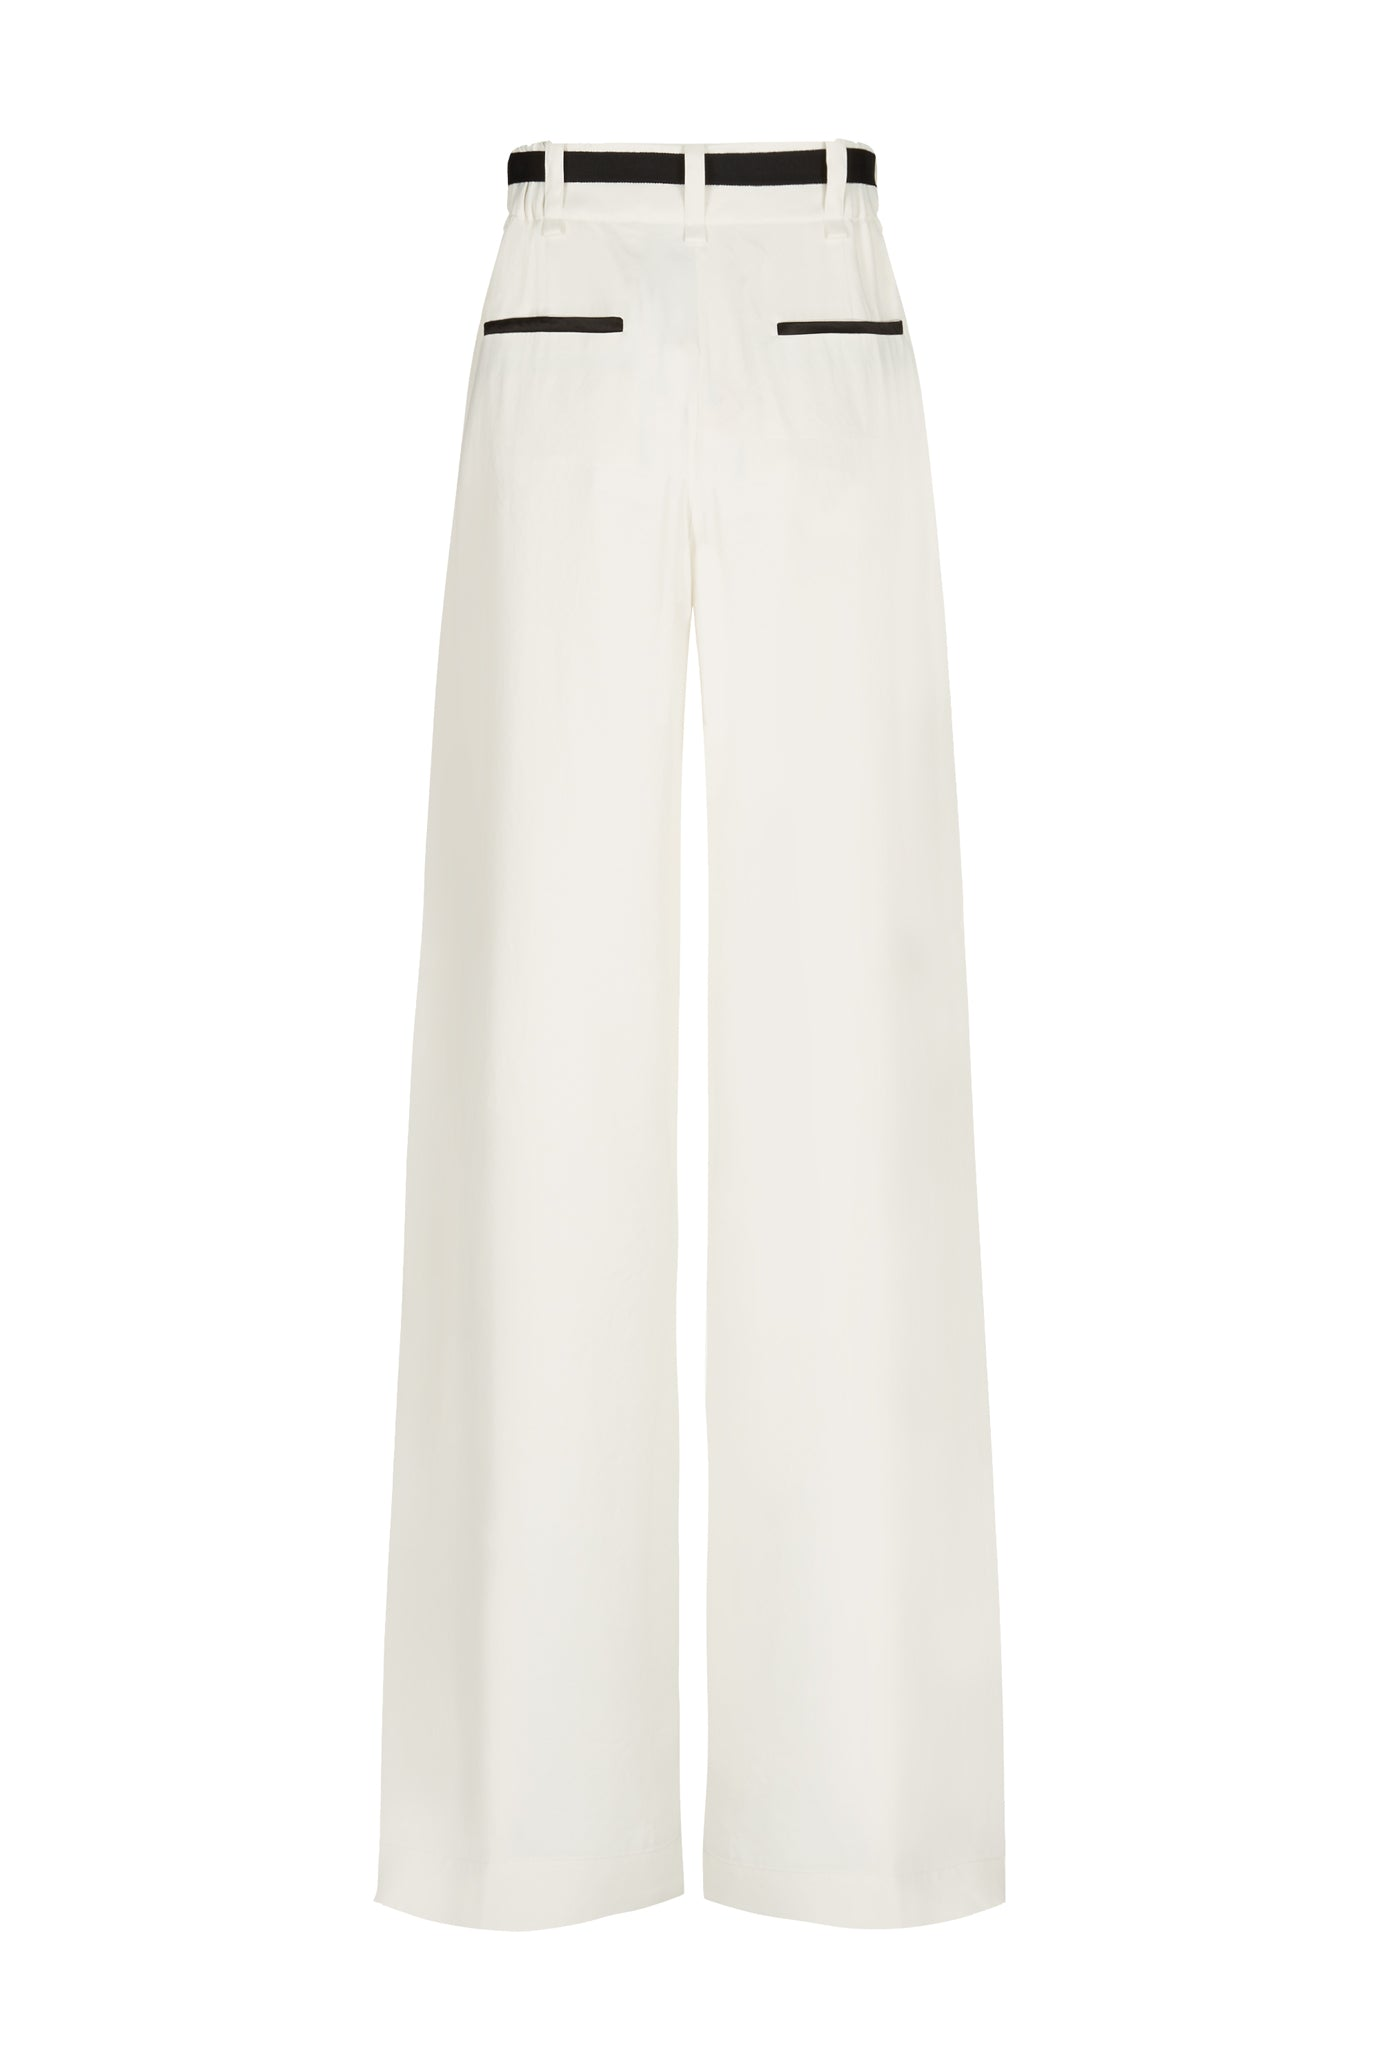 Serena wide leg trouser cream natural fabric